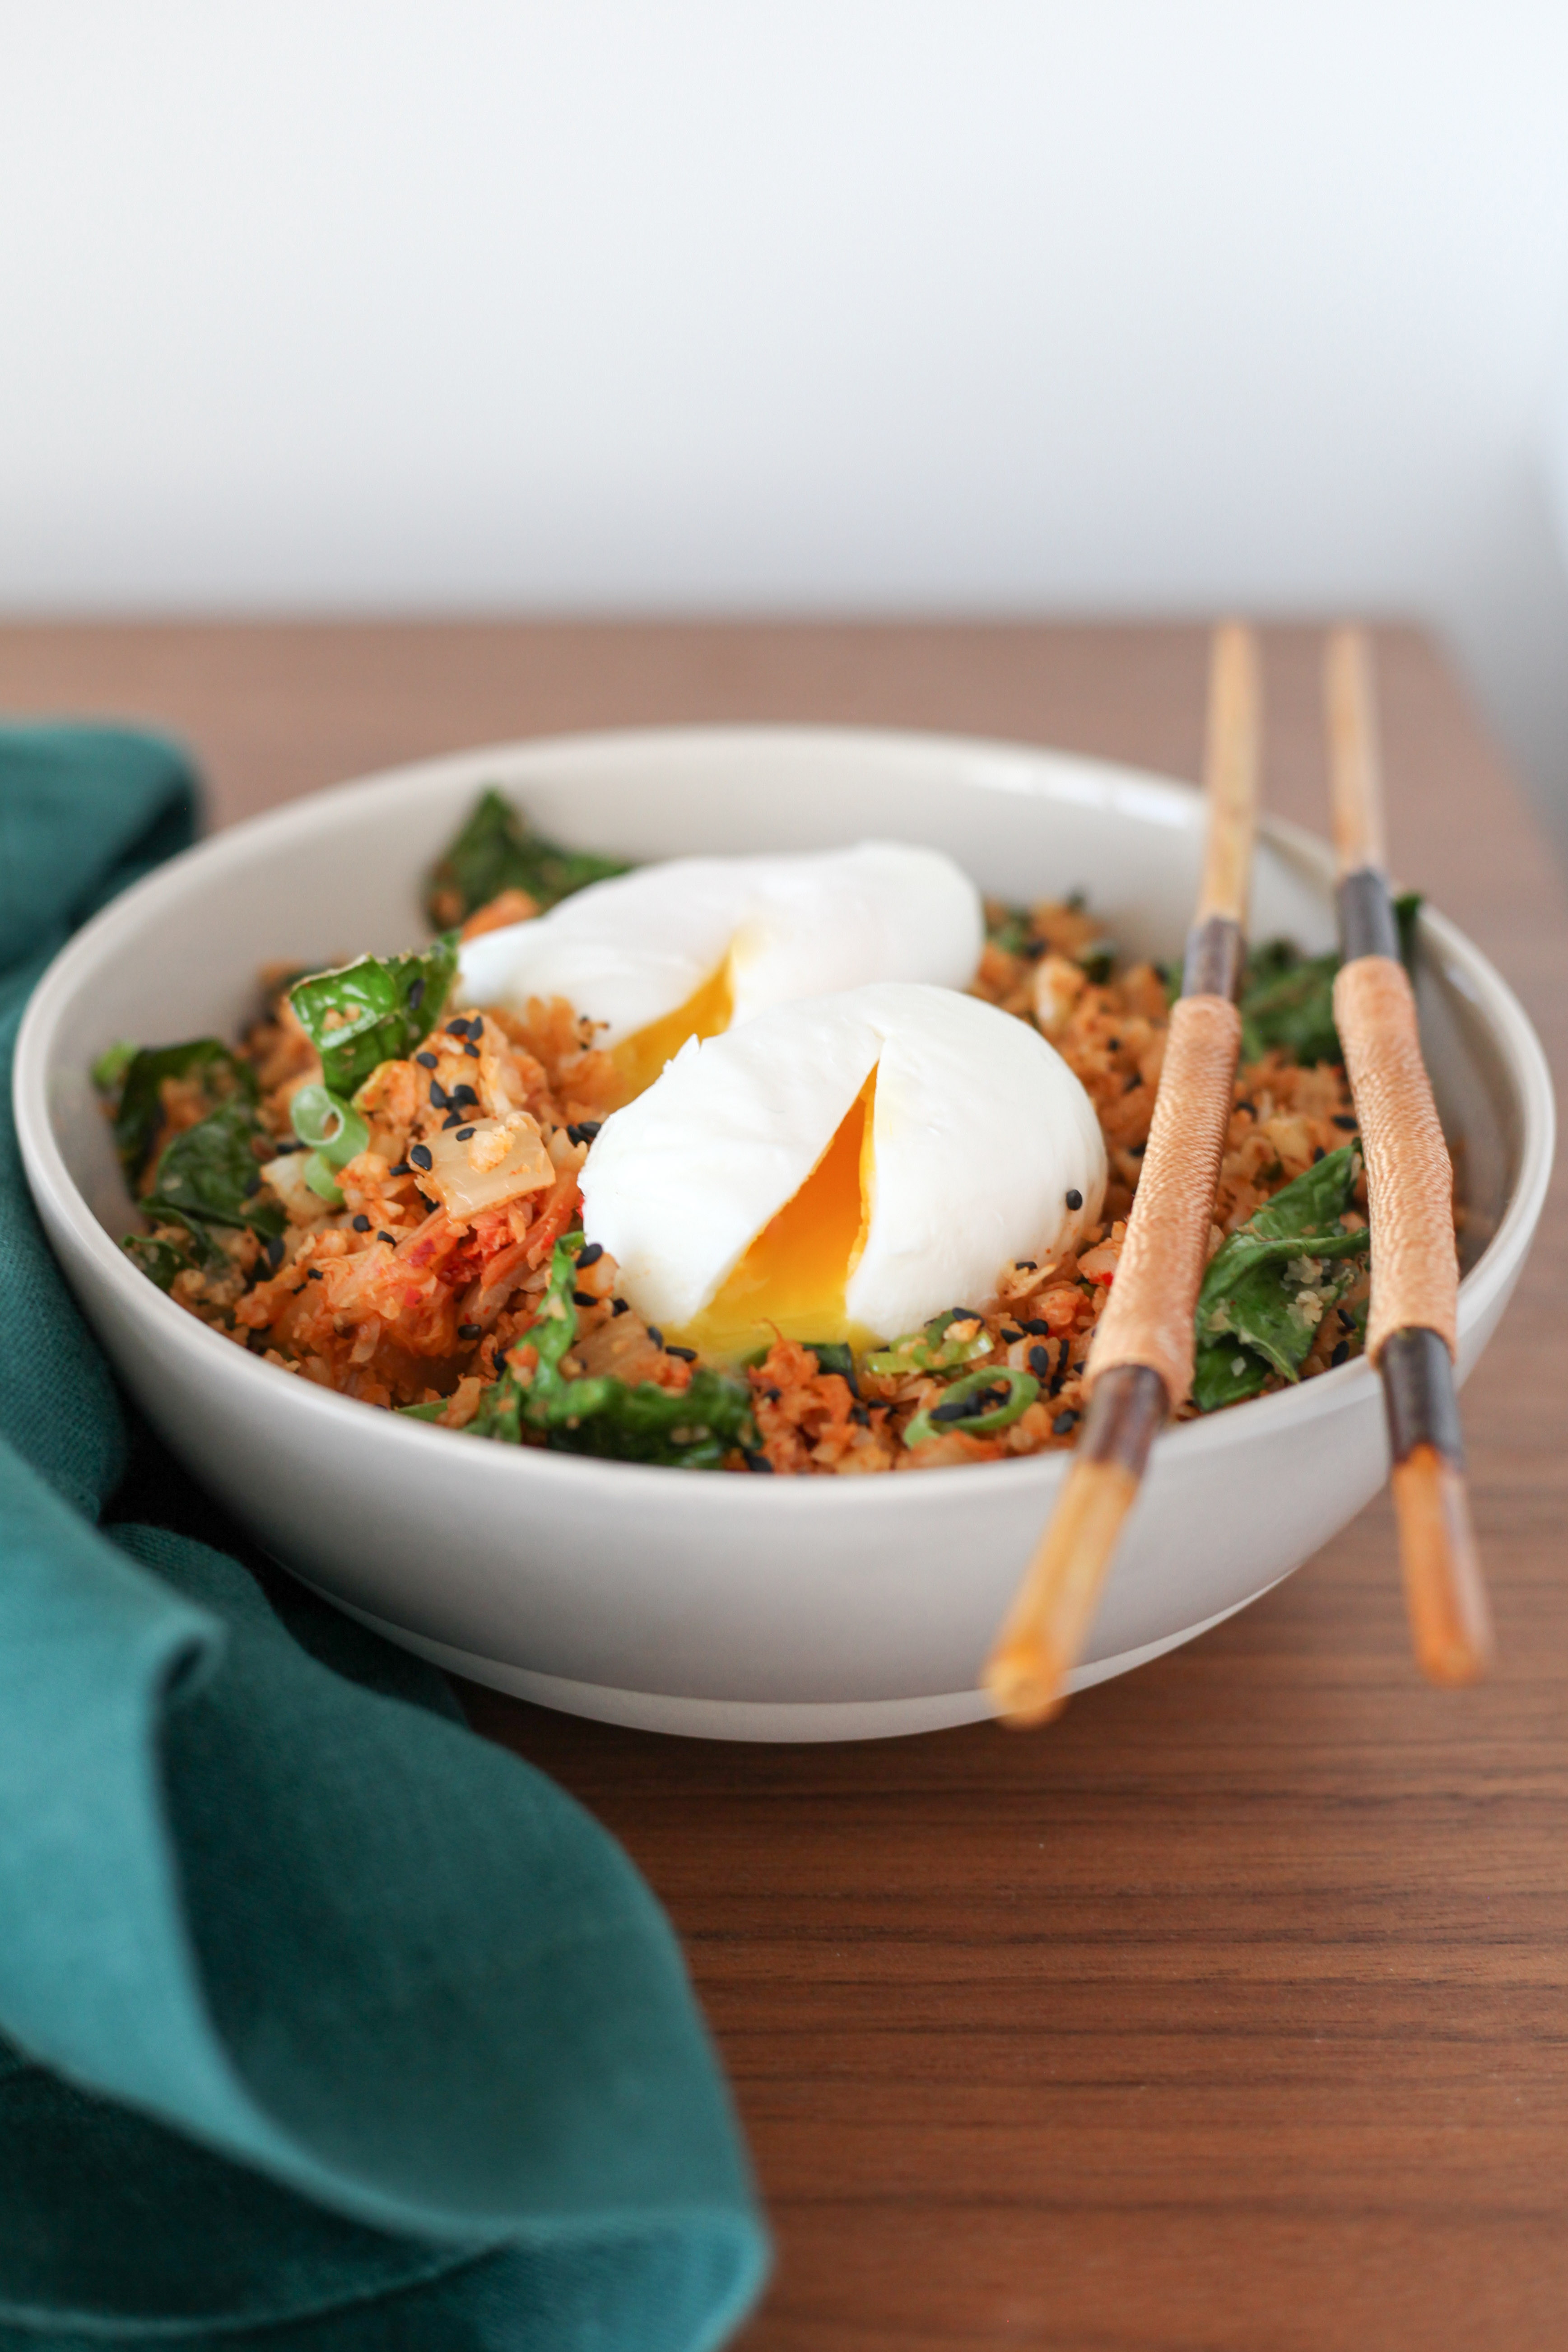 Cauliflower Fried Rice With Kale and Kimchi | amodestfeast.com | @amodestfeast